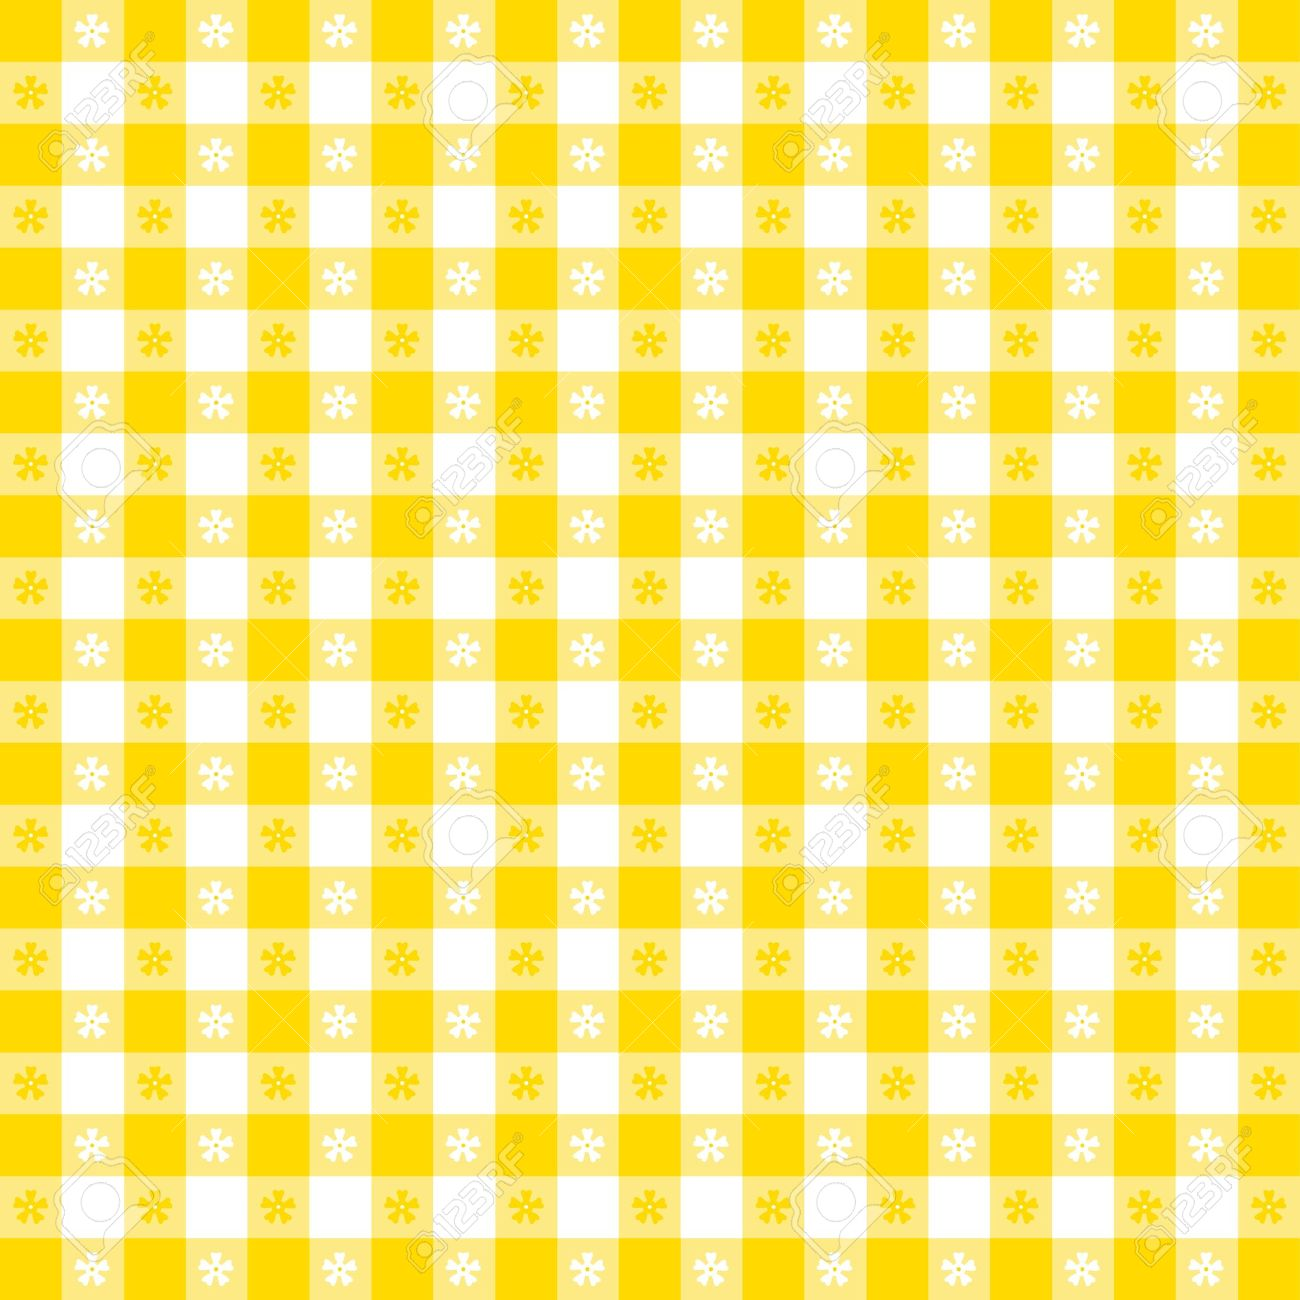 Yellow Kitchen Wallpaper Seamless Tablecloth Pattern Royalty Free Cliparts Vectors And